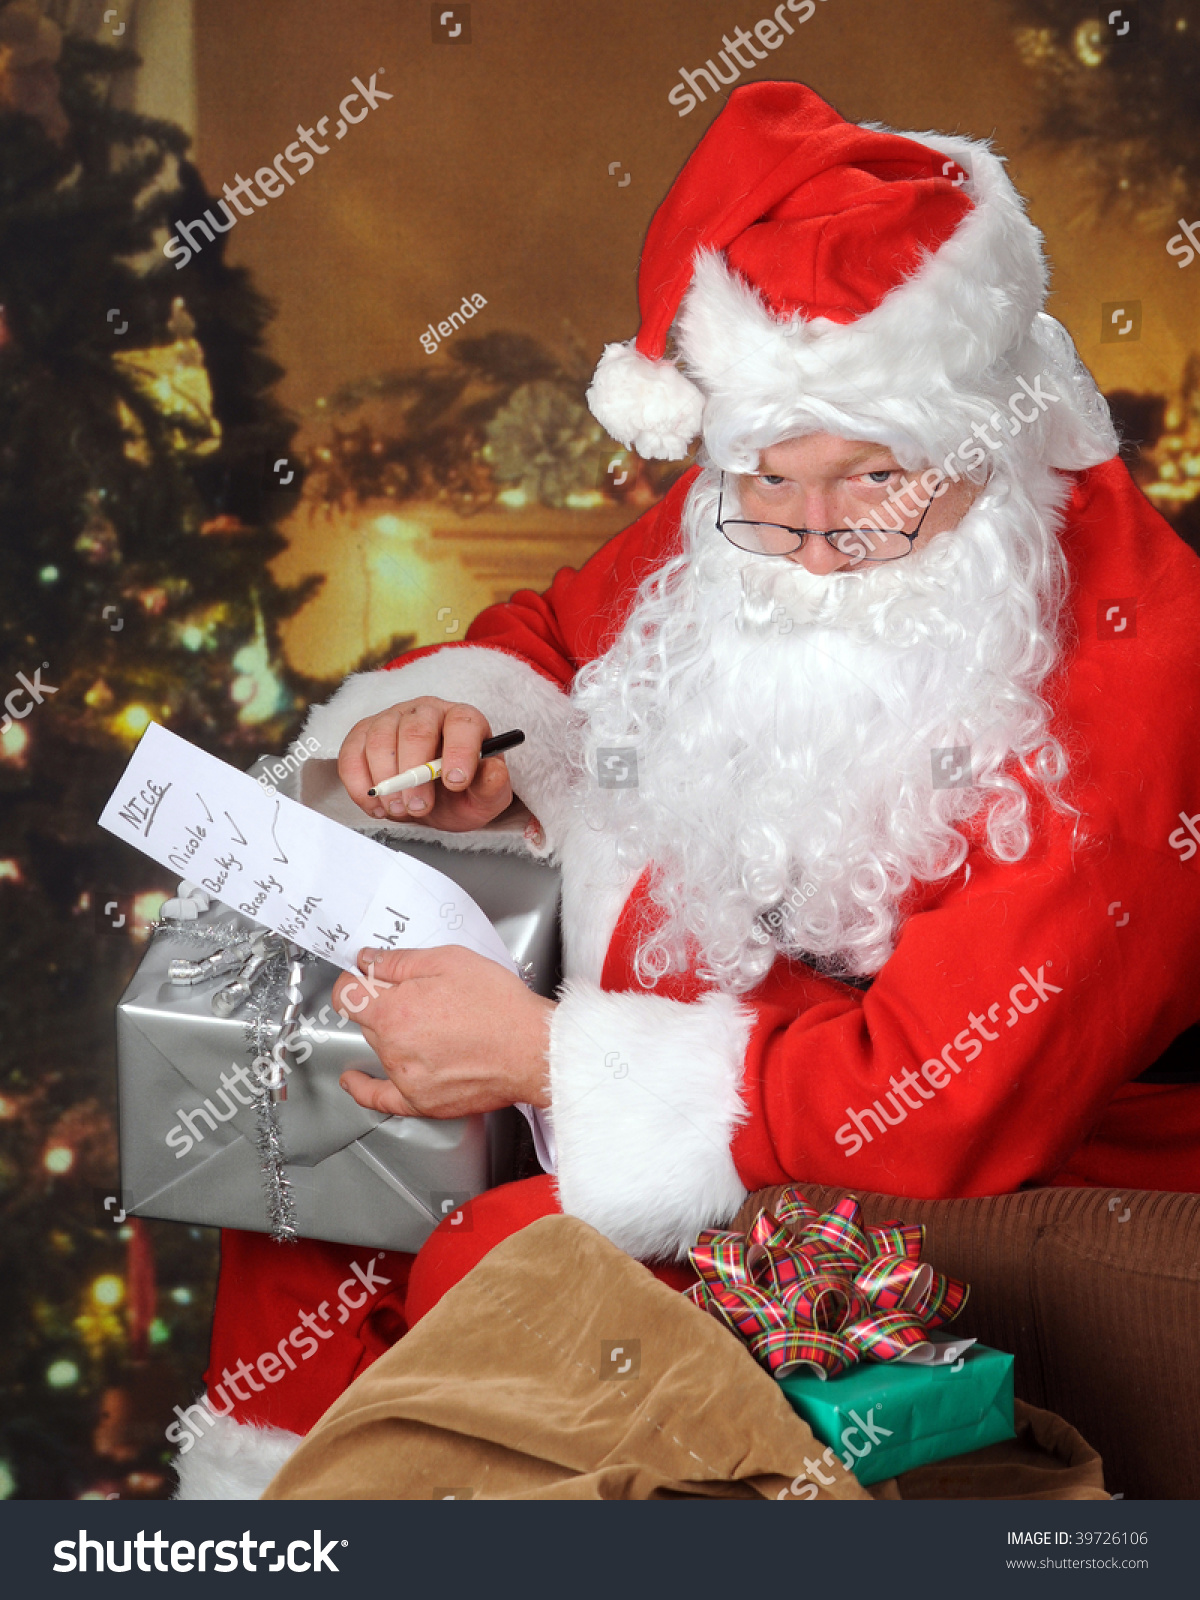 Santa With His Sack In A Decorated Living Room Glaring At The Viewer While Checking His Nice